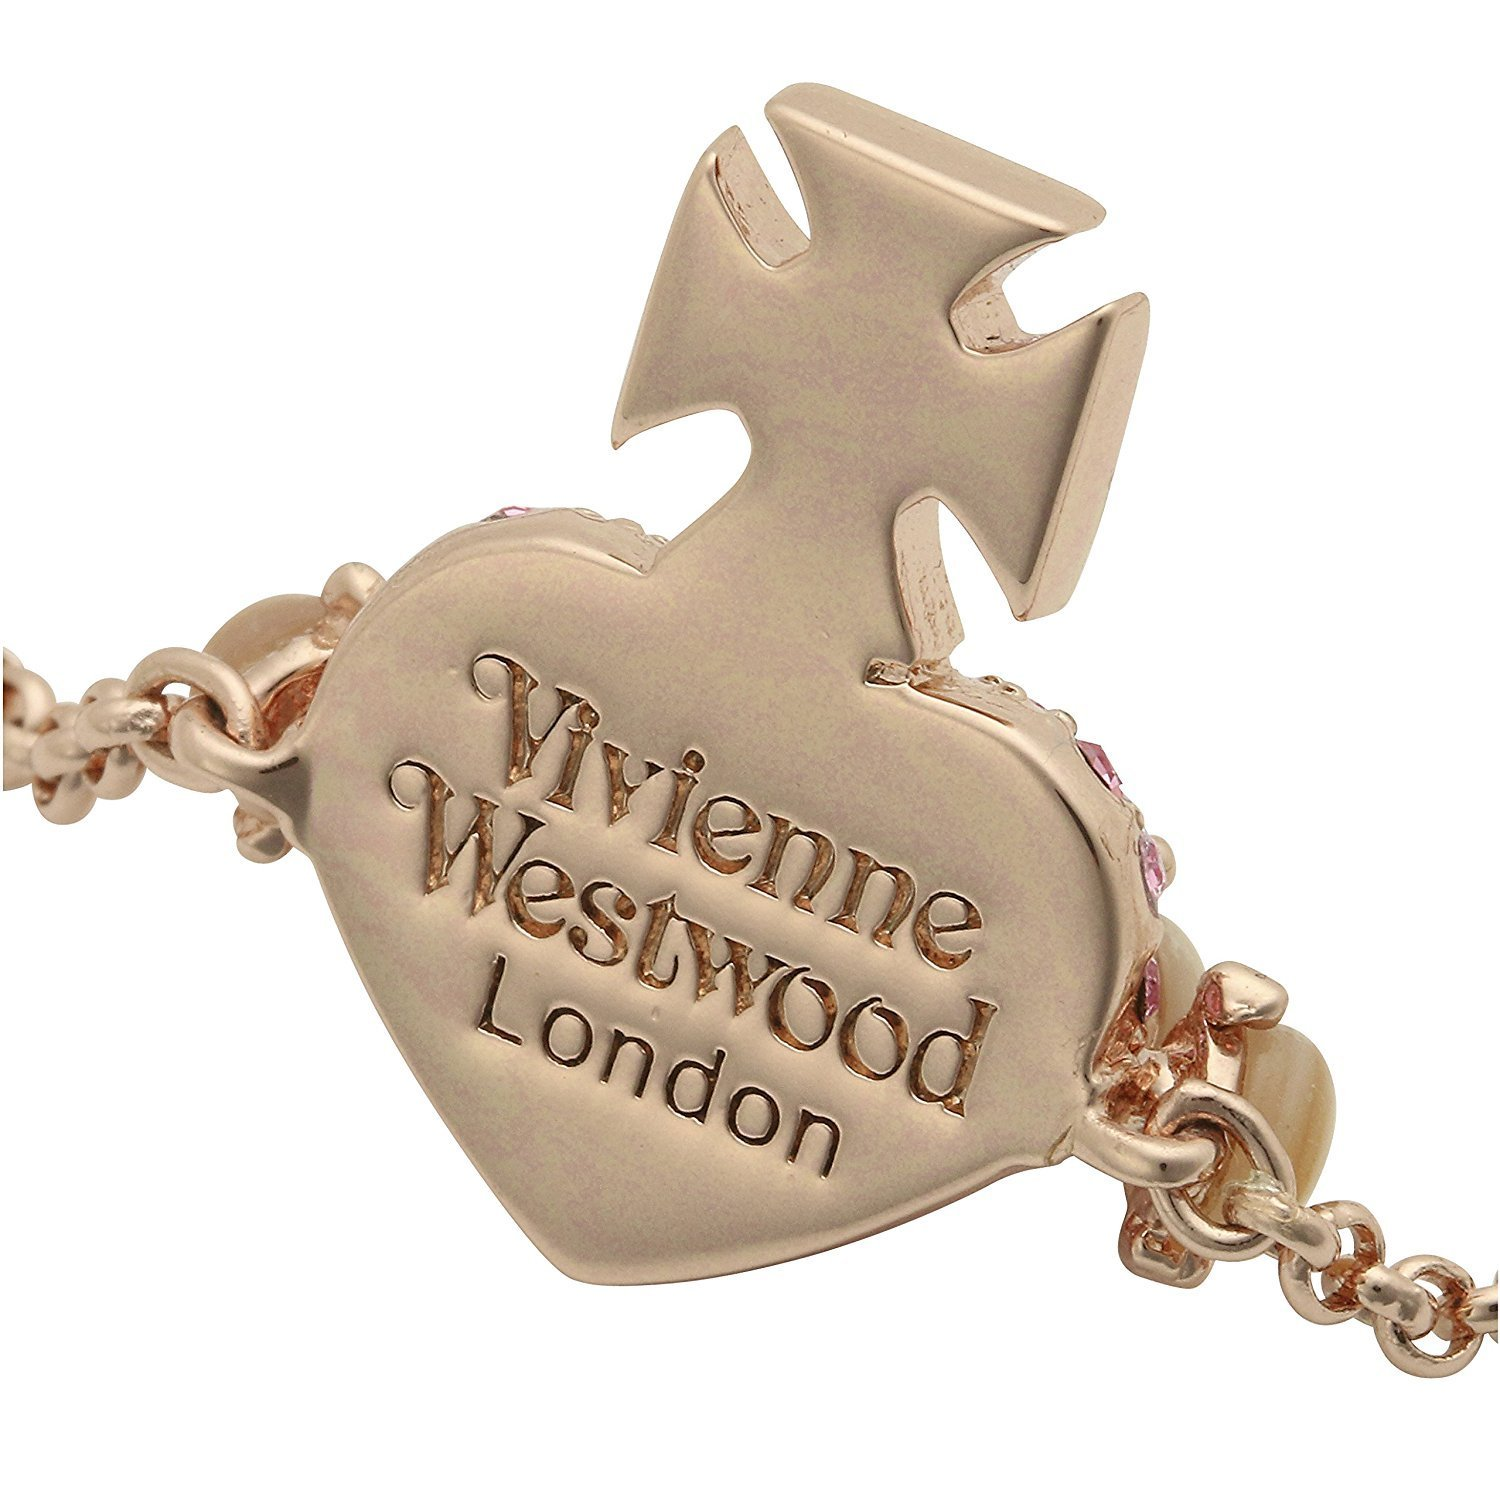 Vivienne Westwood OONA BAS RELIEF ブレスレット 741384B/2